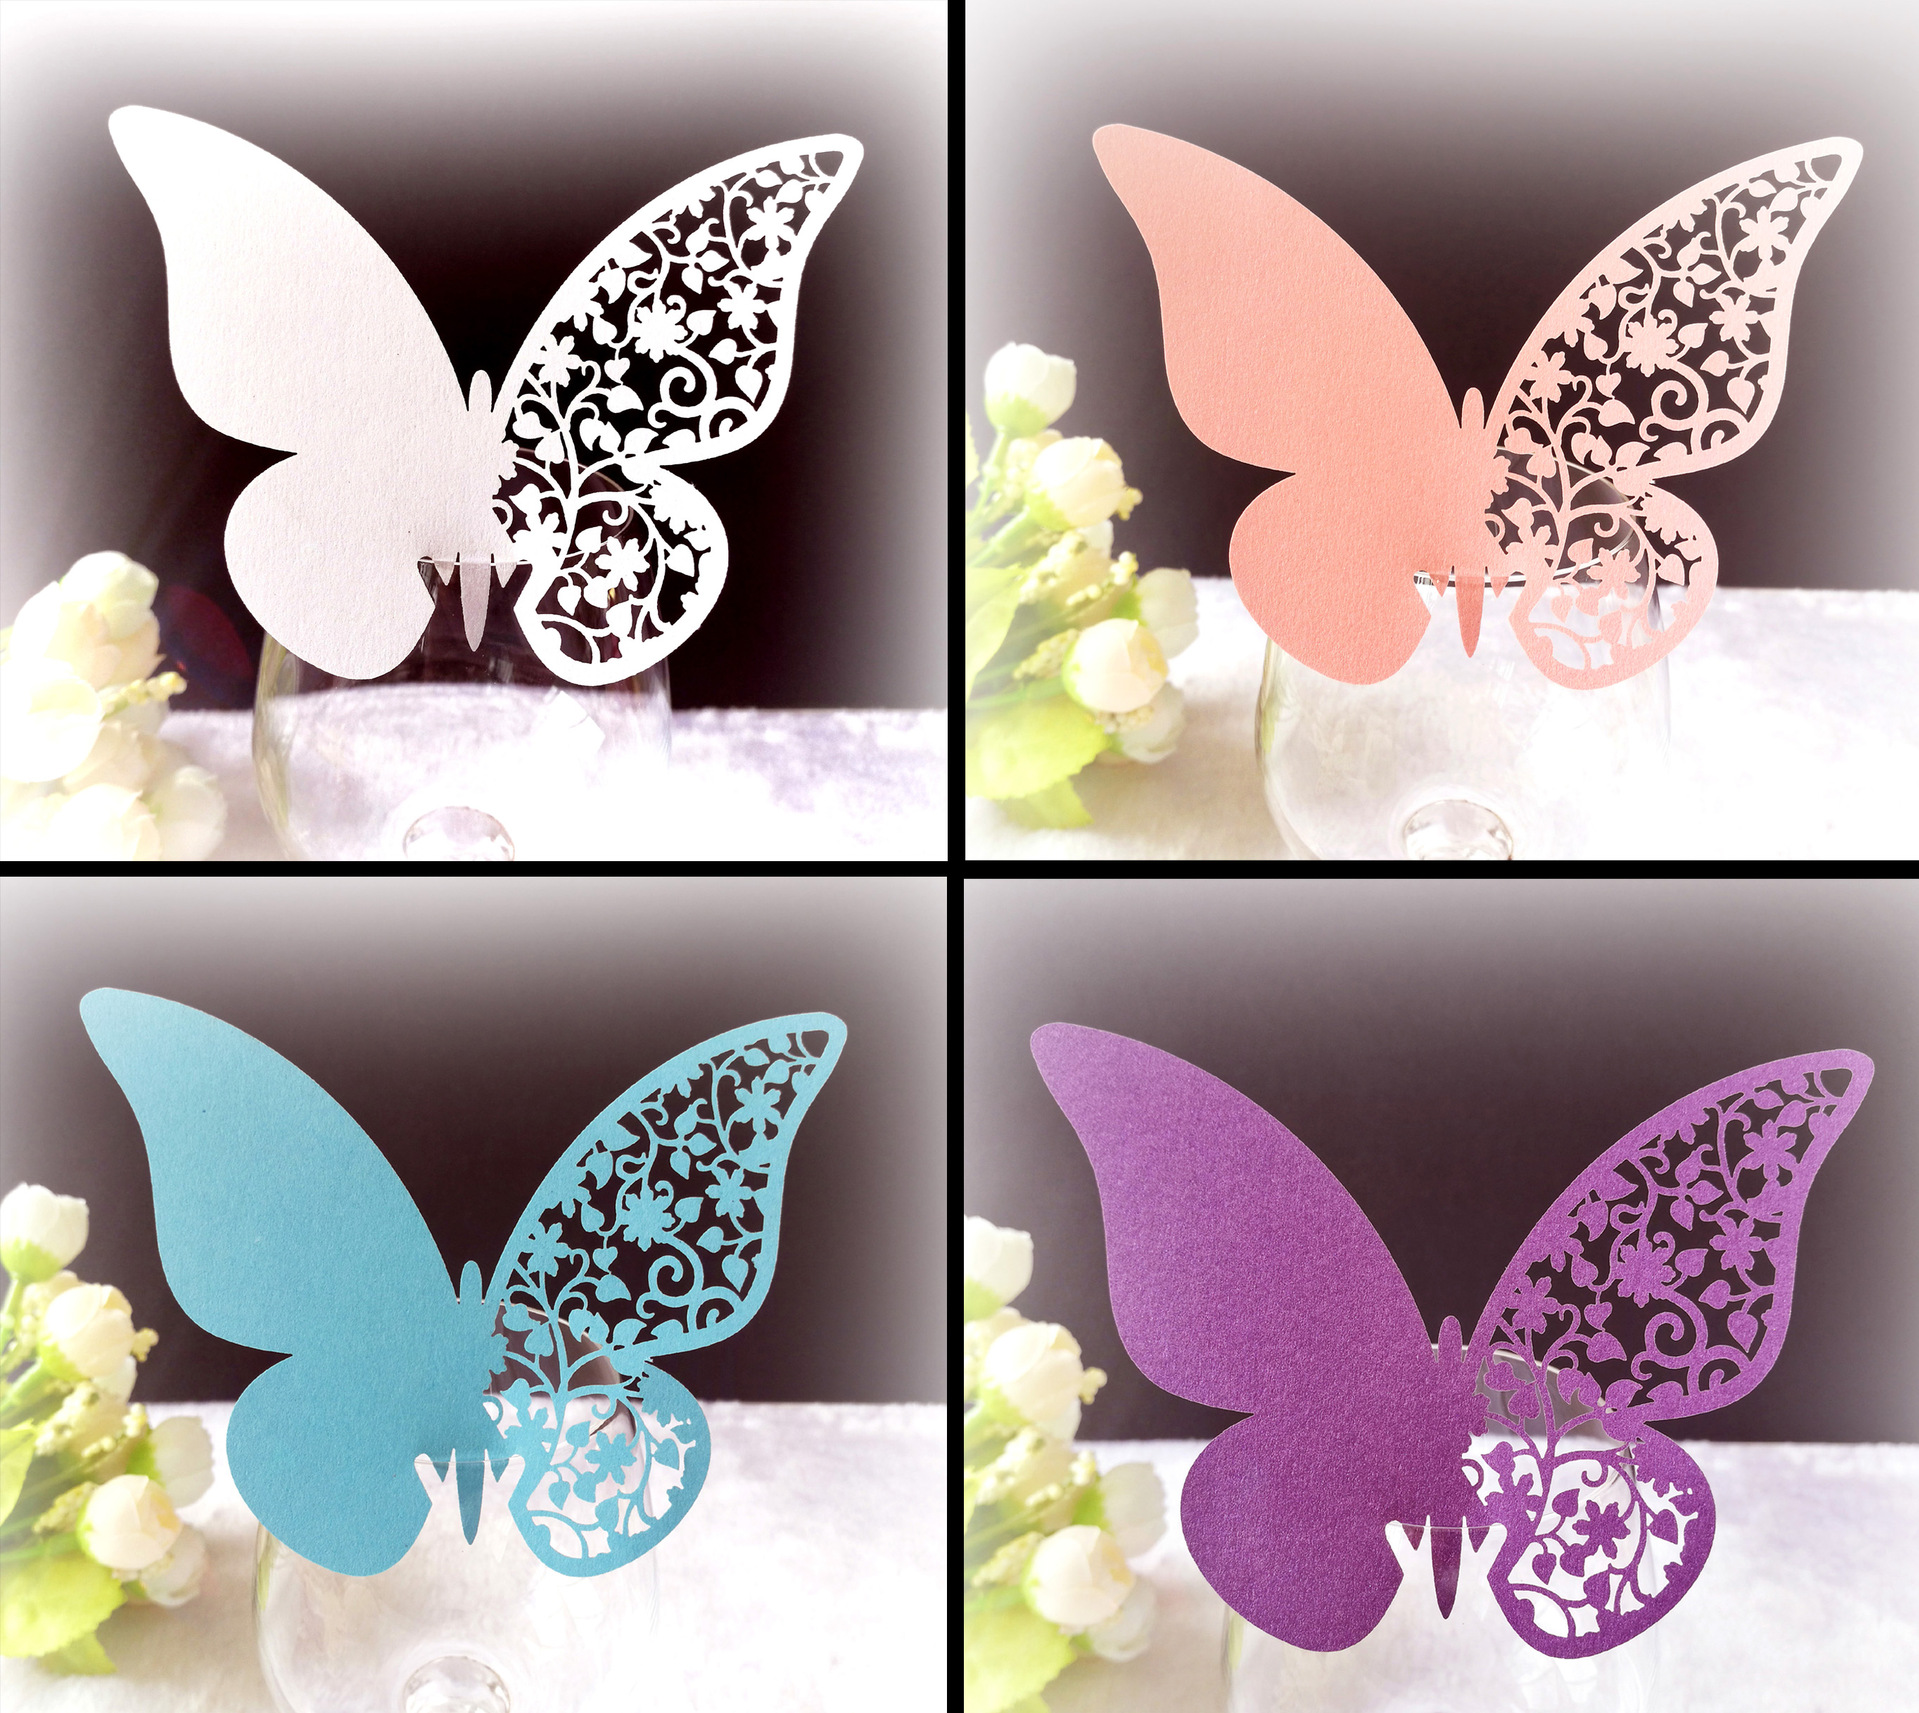 25pcs Butterfly Heart Laser Cut Table Mark Wine Glass Name Place Cards  Wedding Birthday Baby Shower Christmas Supplies| | - AliExpress